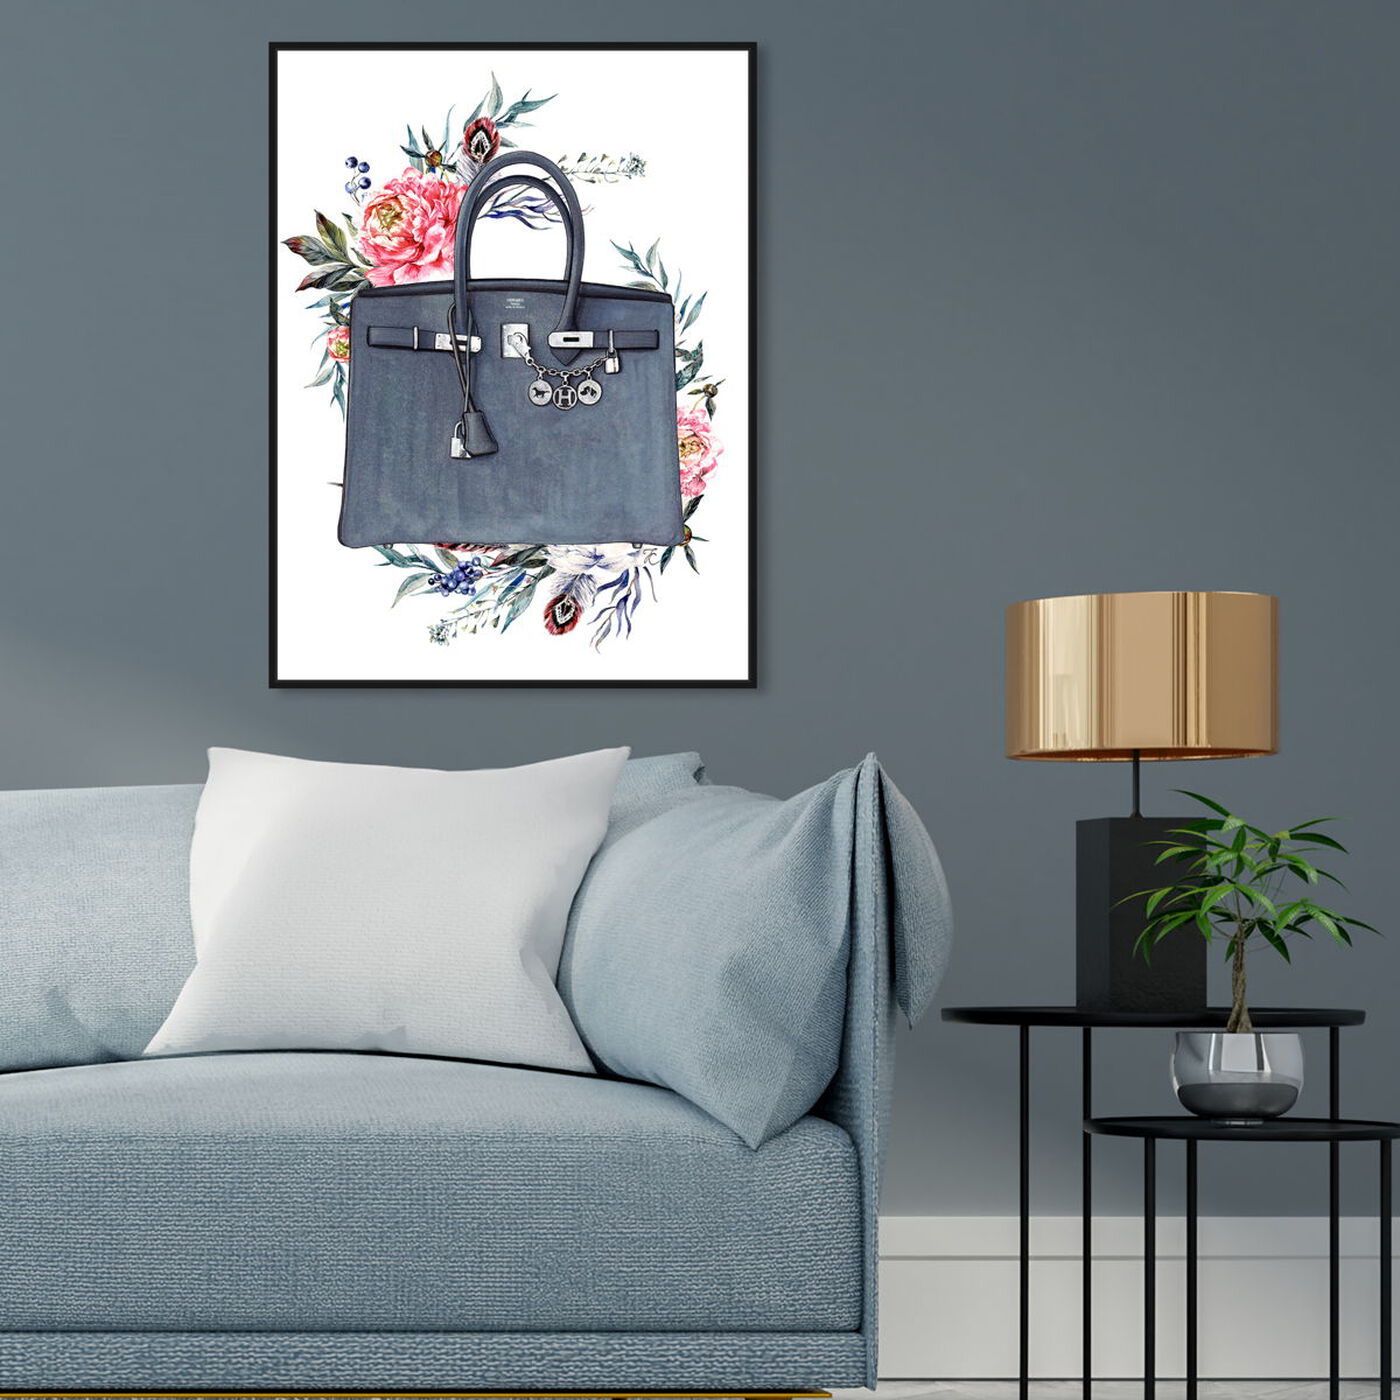 Hanging view of Doll Memories - Paris Glam and Flowers featuring fashion and glam and handbags art.